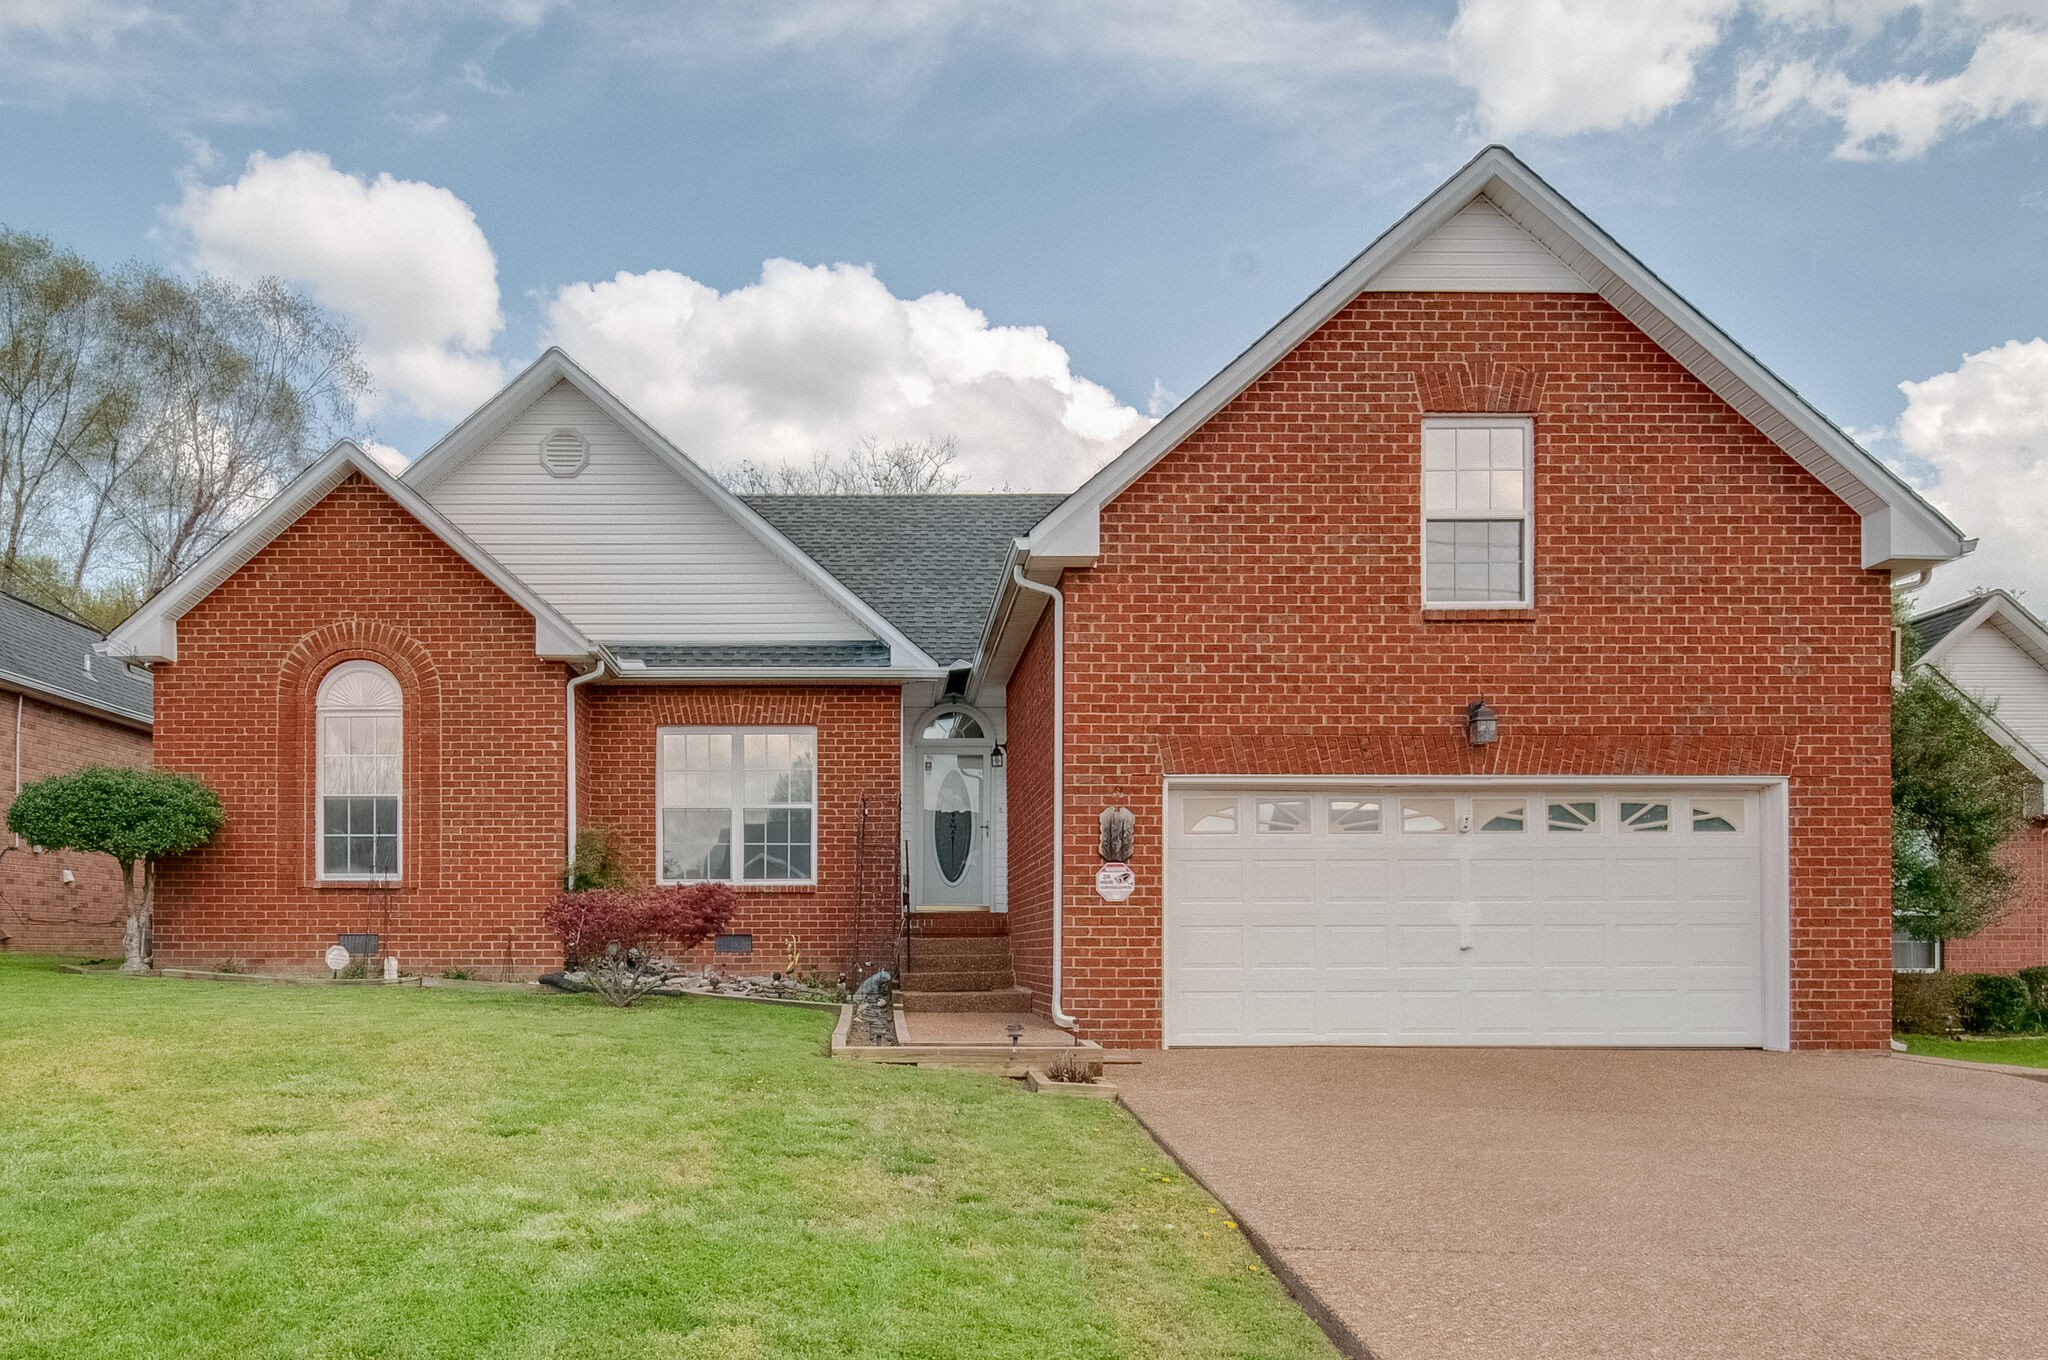 109 Edgeview Dr Property Photo - Hendersonville, TN real estate listing